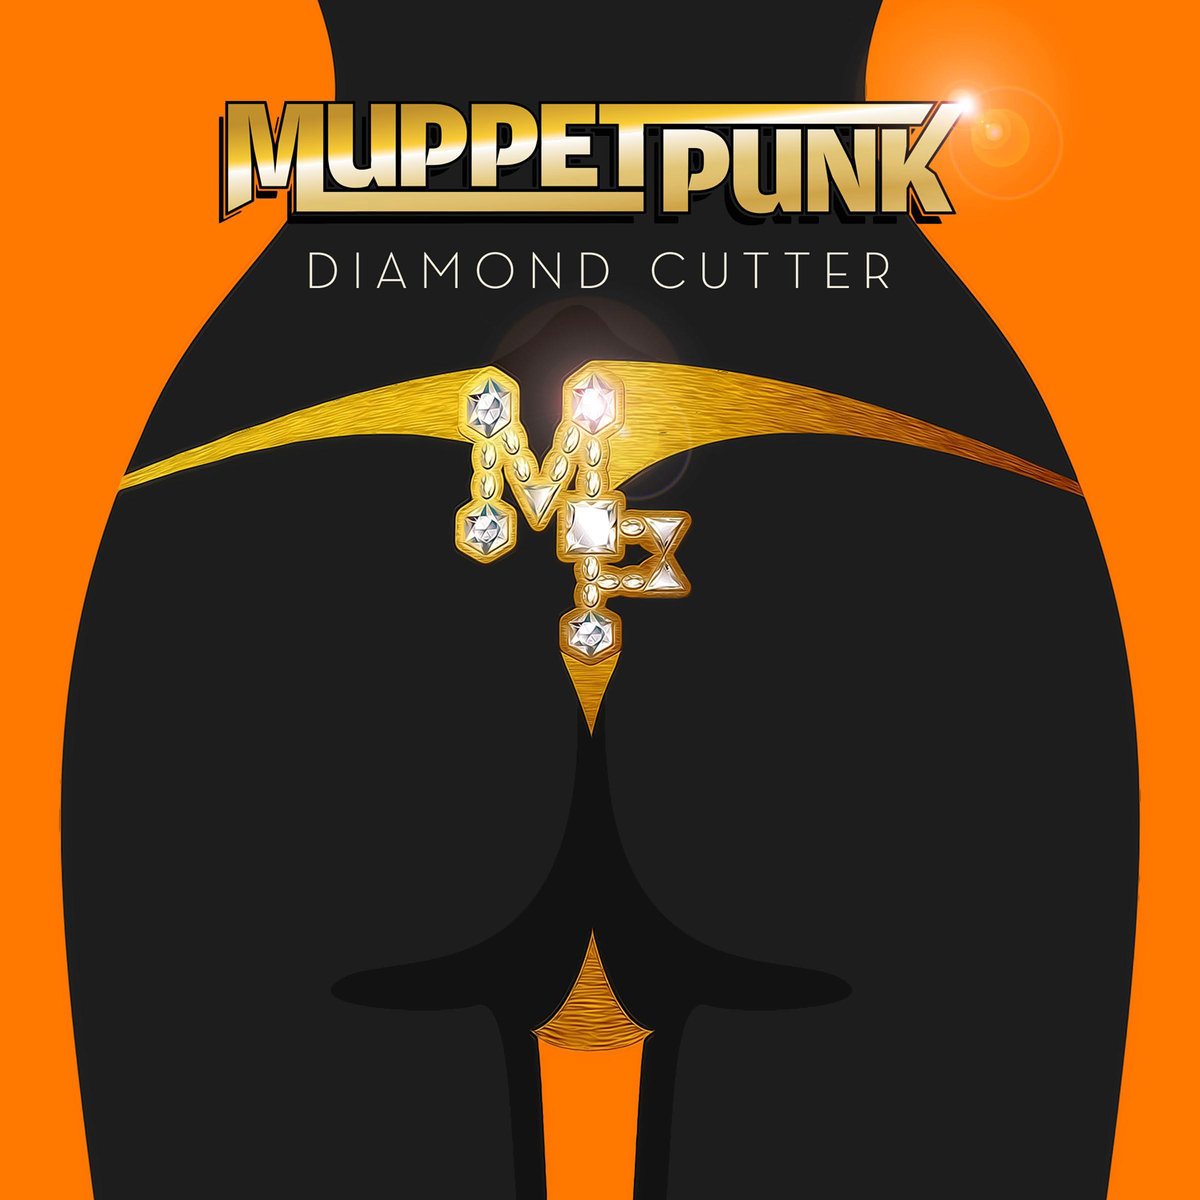 Muppet Punk - Diamond Cutters (artwork)